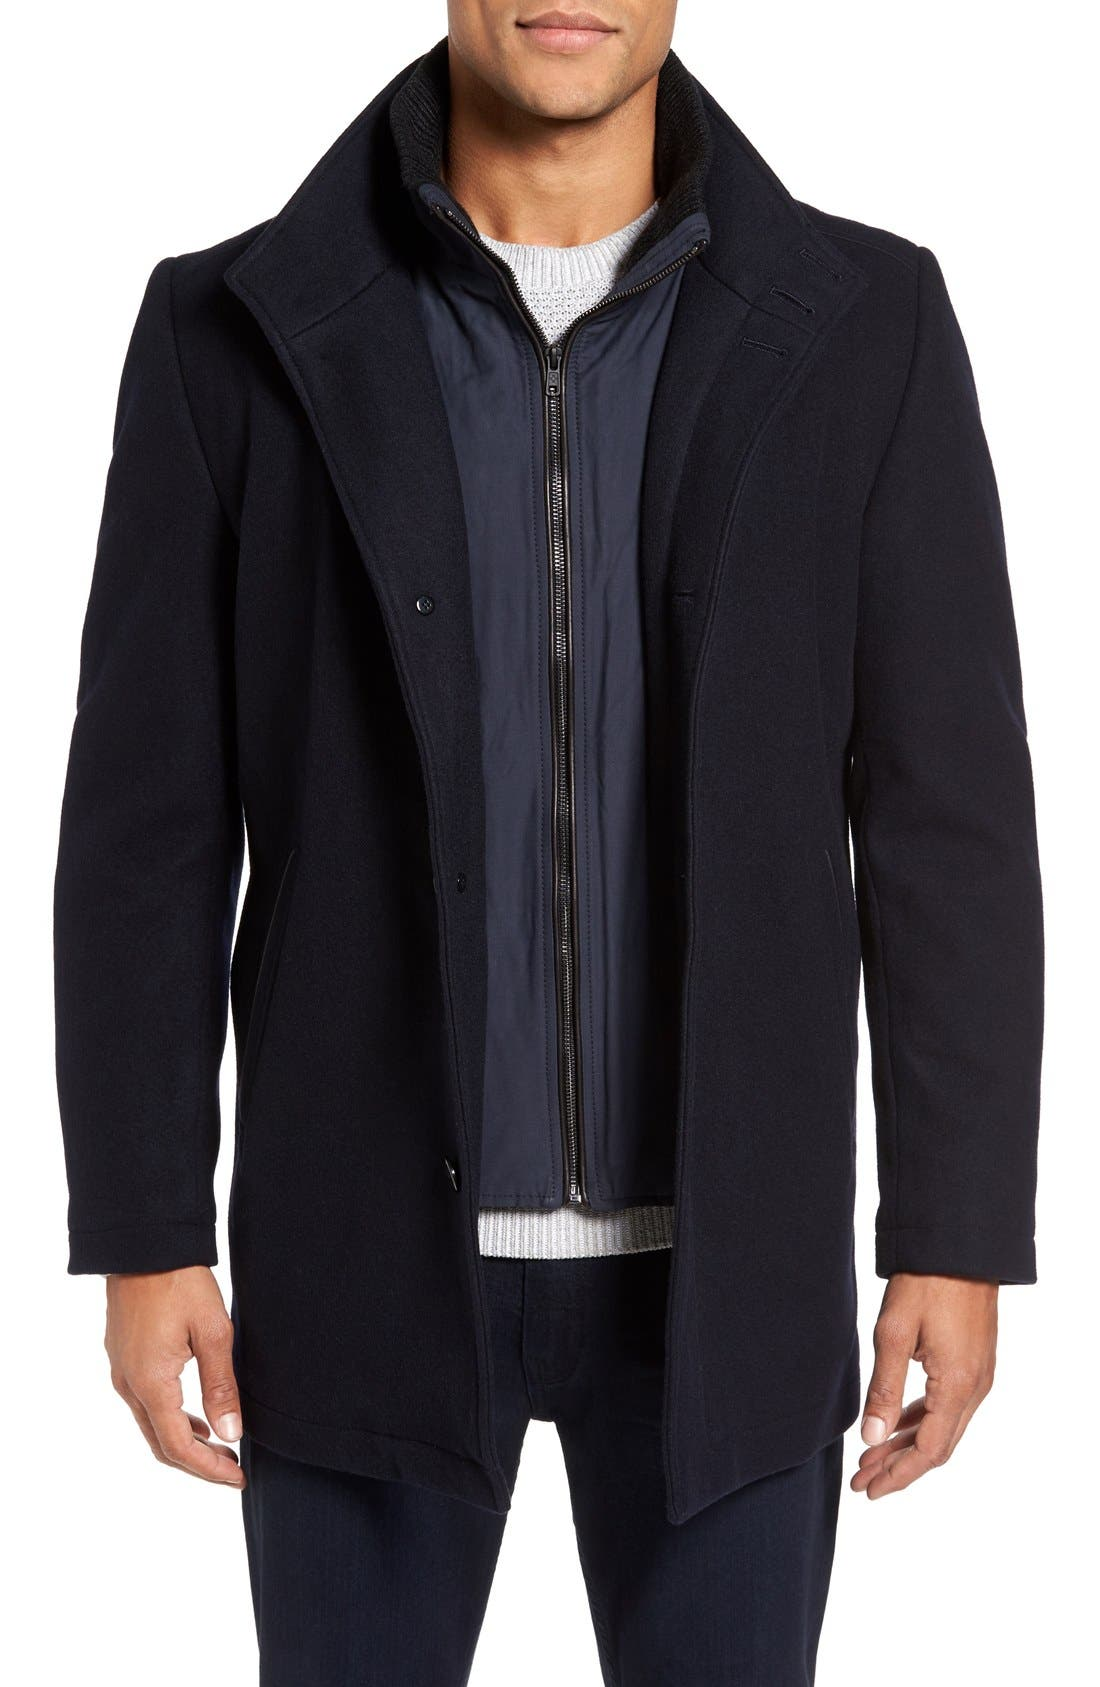 Alternate Image 1 Selected - Vince Camuto Classic Wool Blend Car Coat with Inset Bib